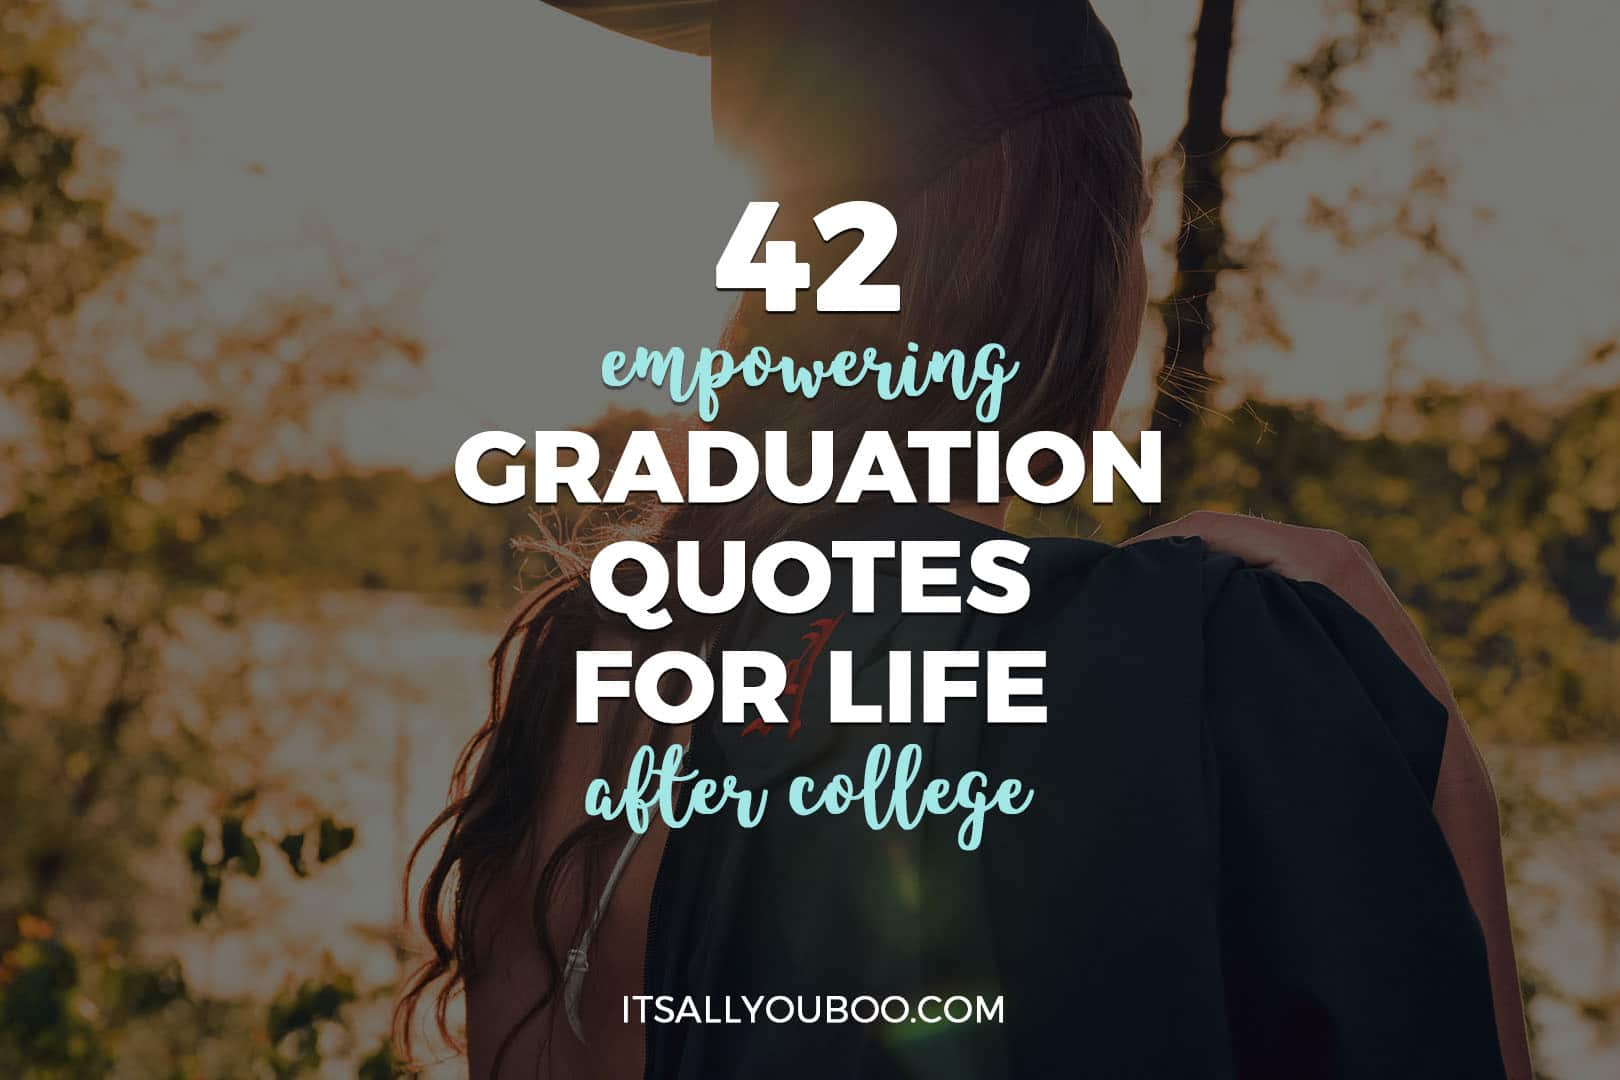 42 Empowering Graduation Quotes for Live After College